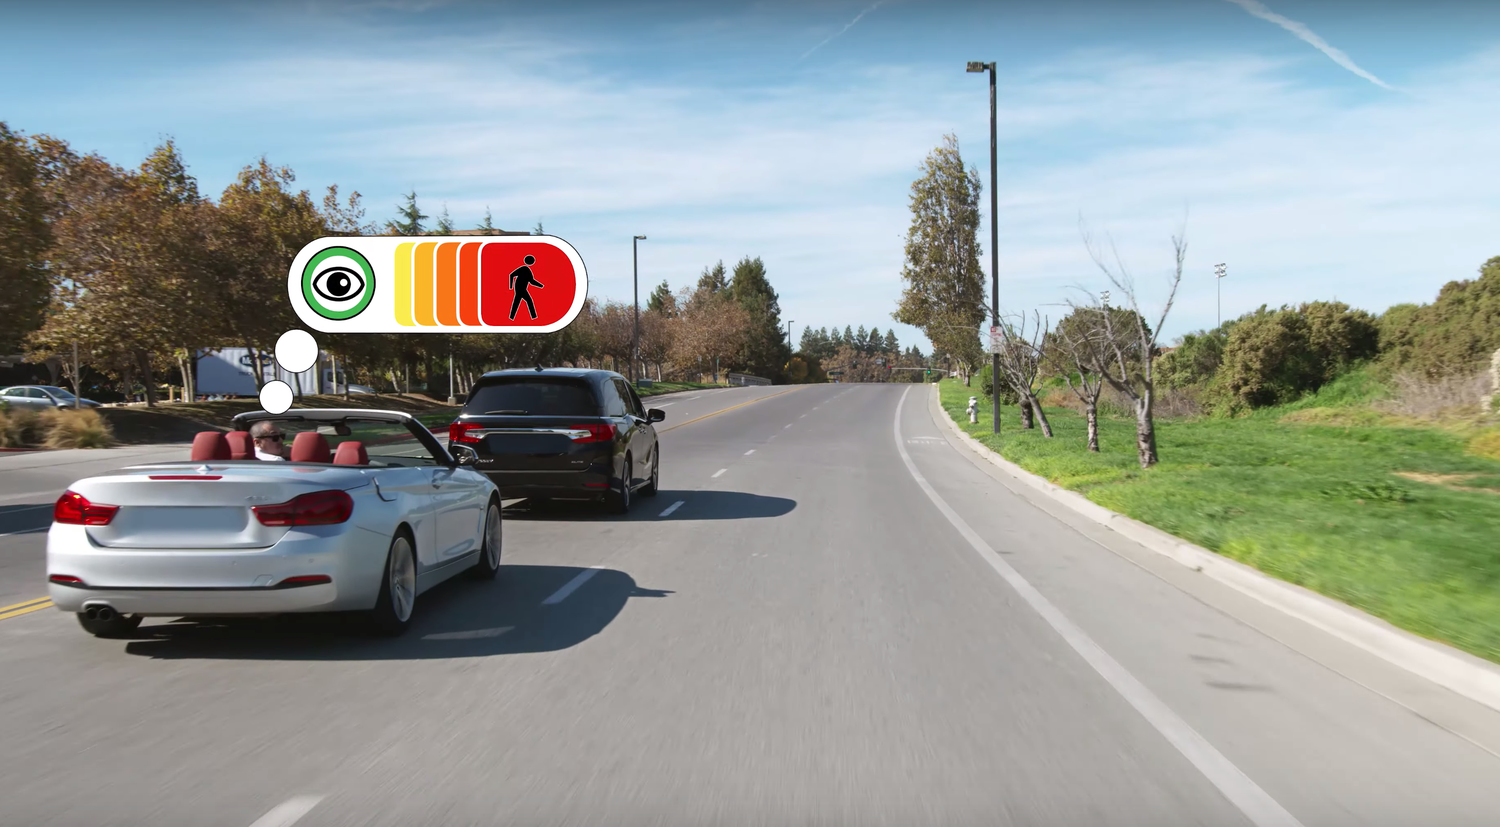 Perceptive Automata takes a novel approach to circumvent the shortcomings of driverless technology by analyzing pedestrian behaviors.